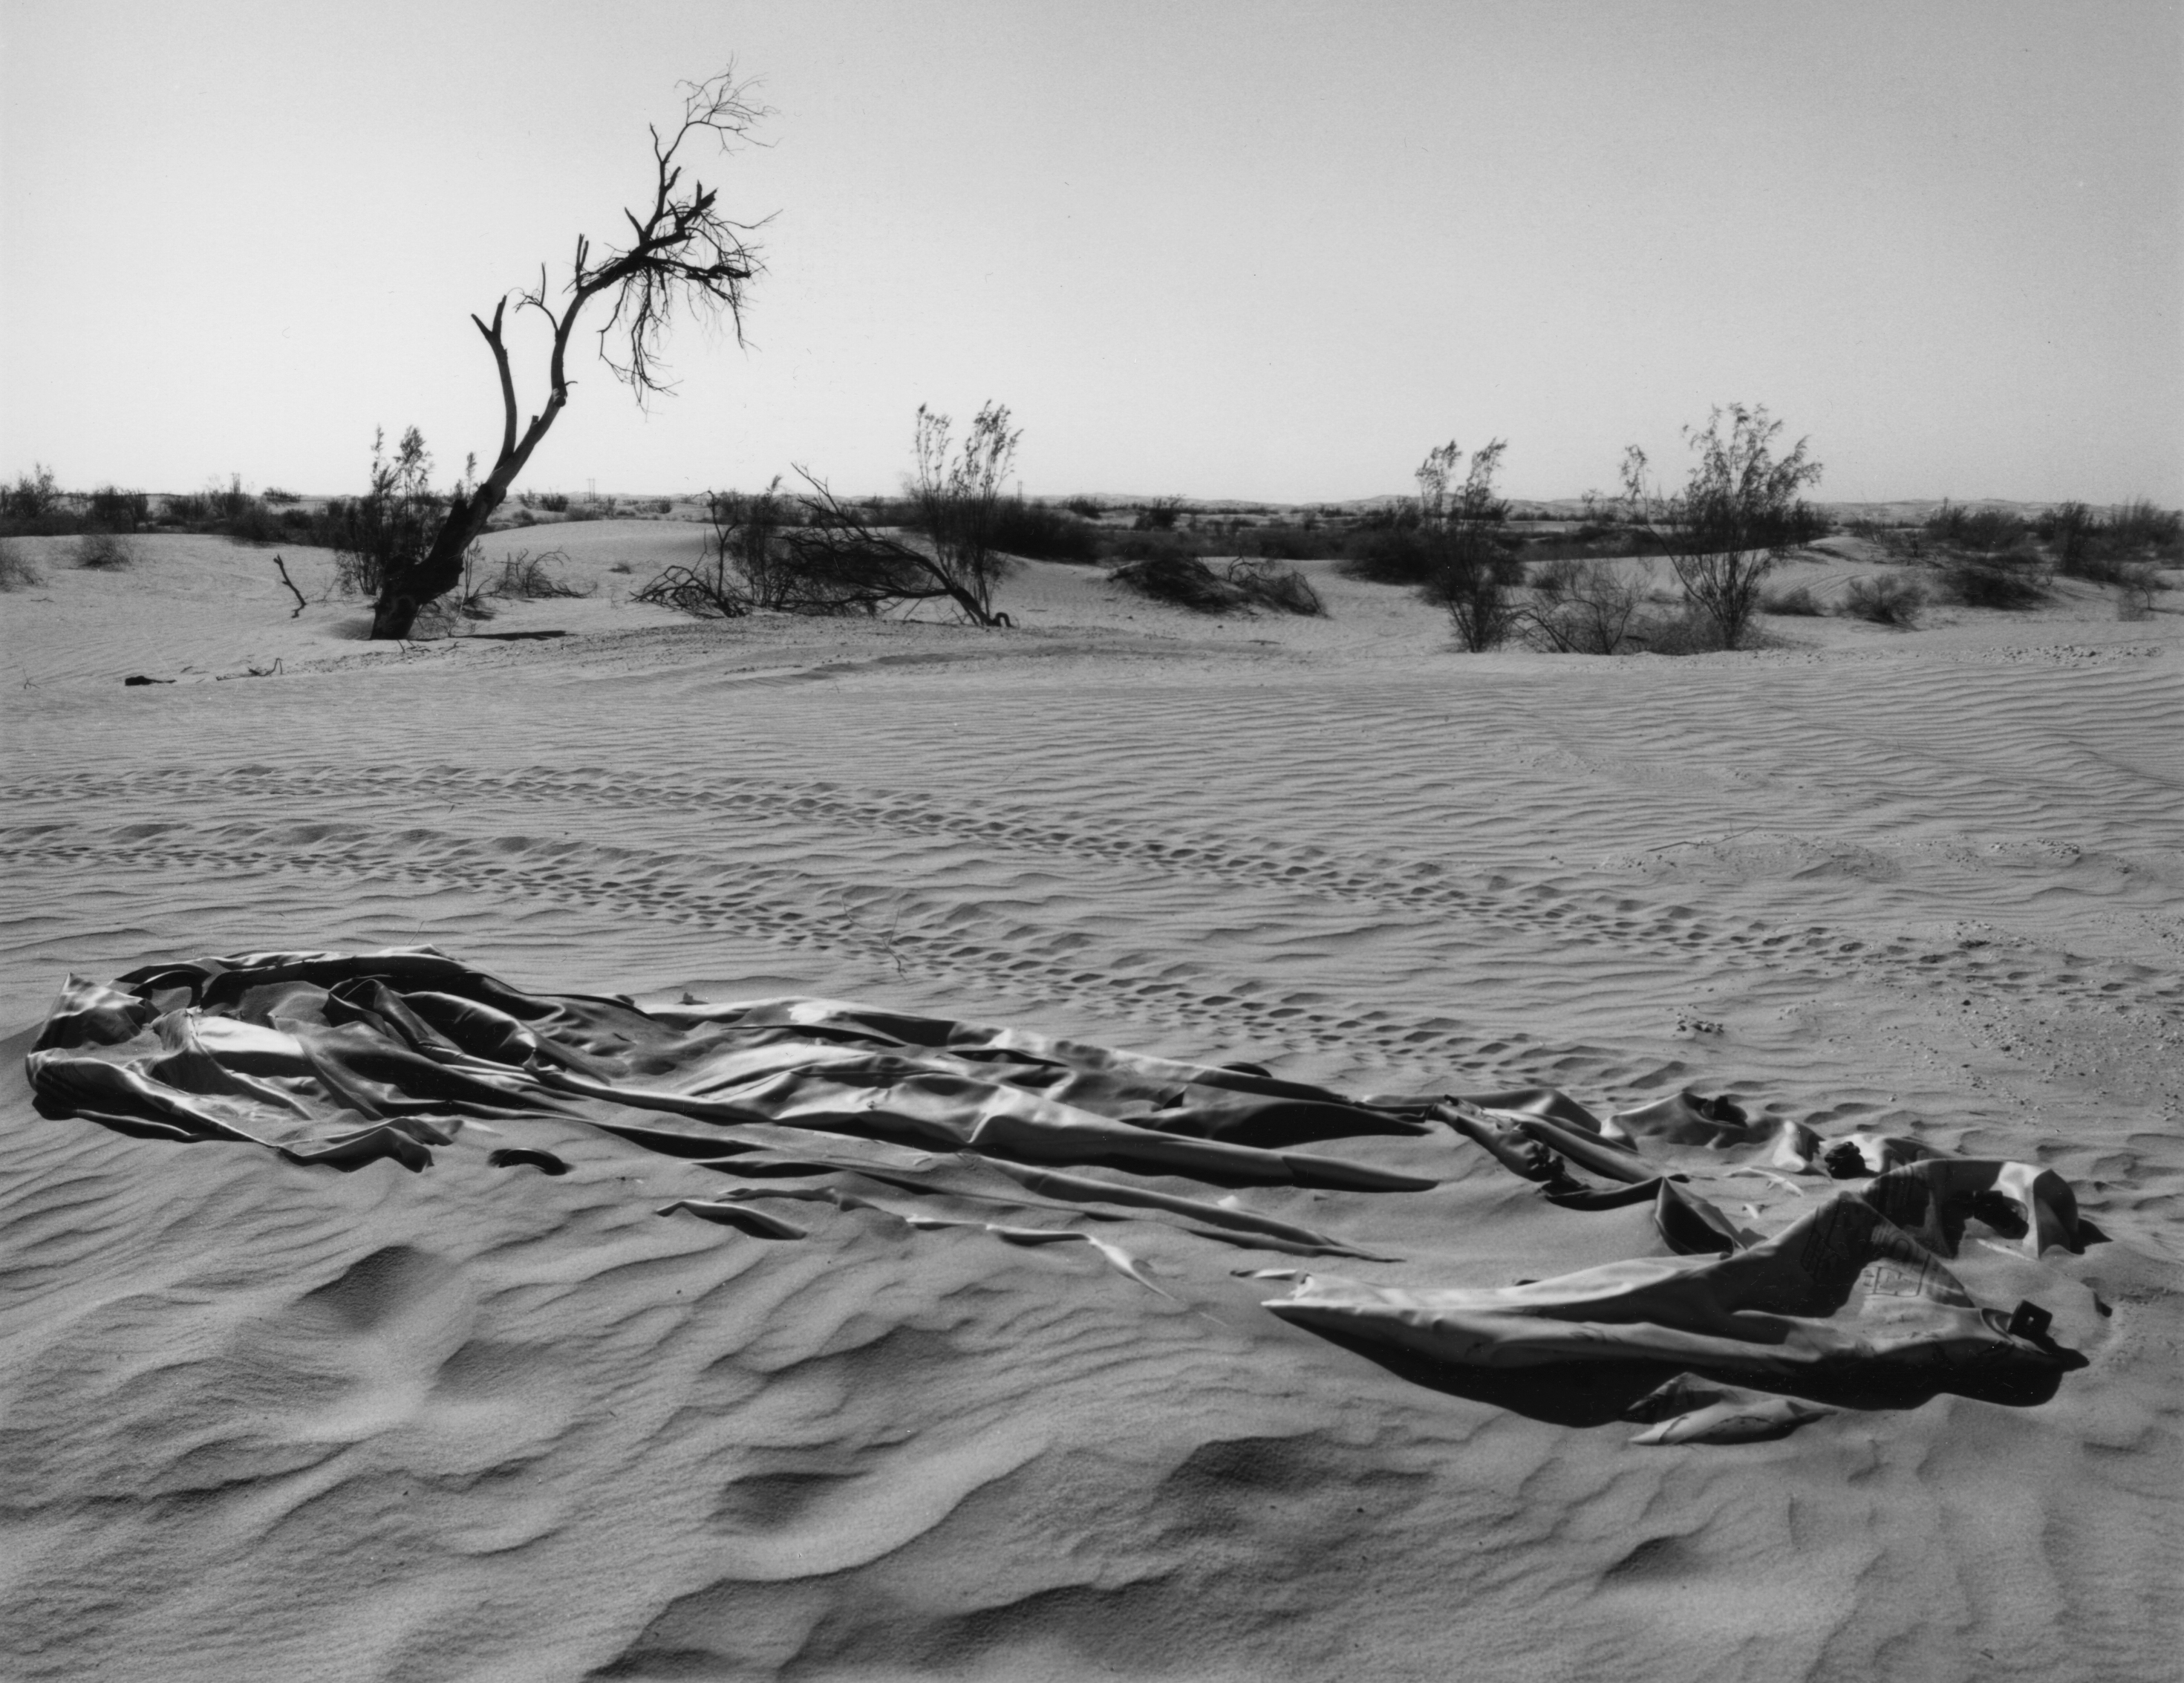 A deflated rubber raft is partly buried in the sand in a desert landscape